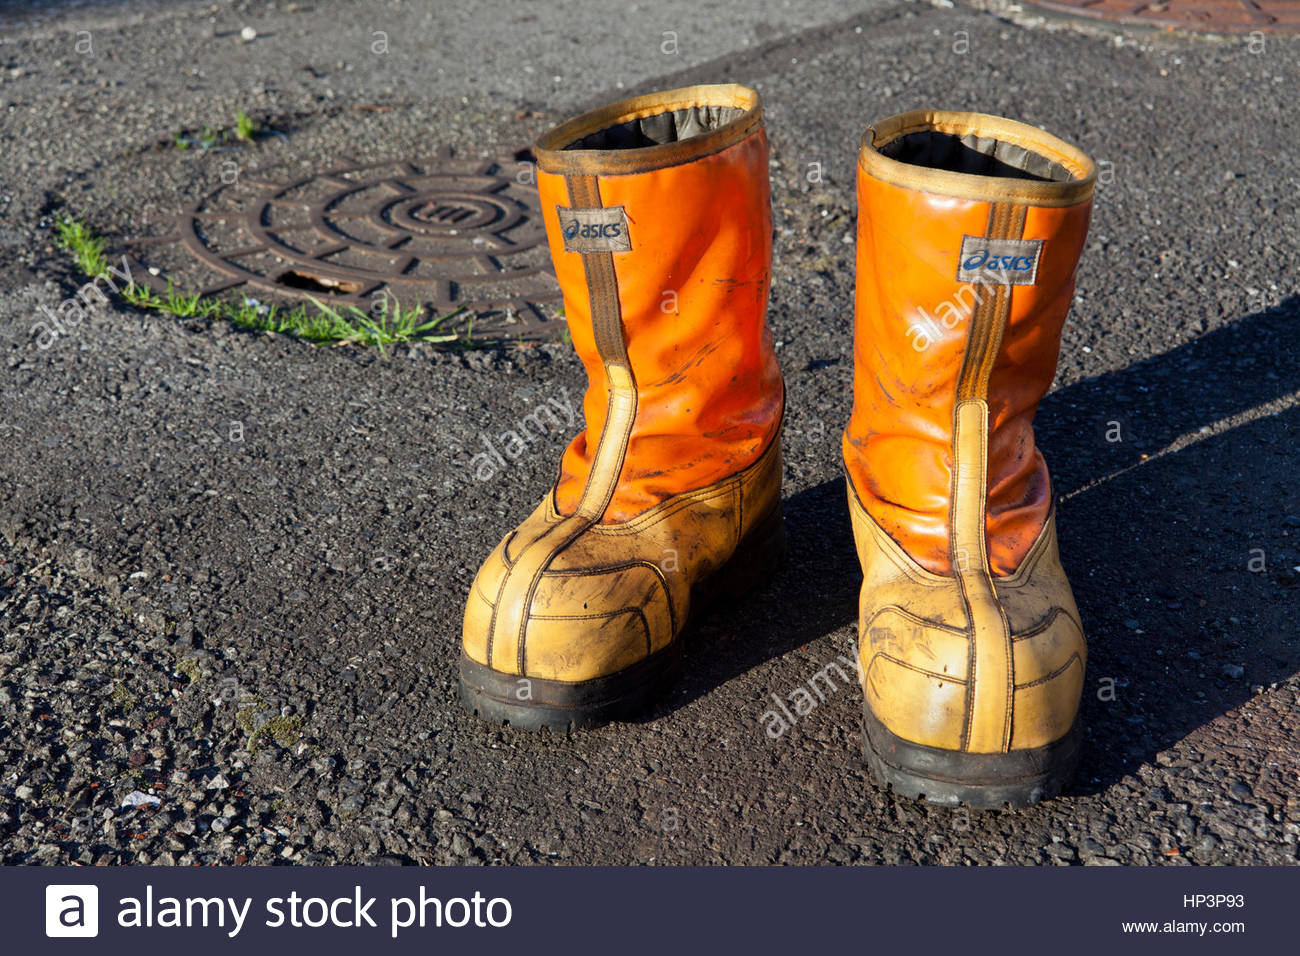 heavy duty fishermen working safety boots Japan - Stock Image